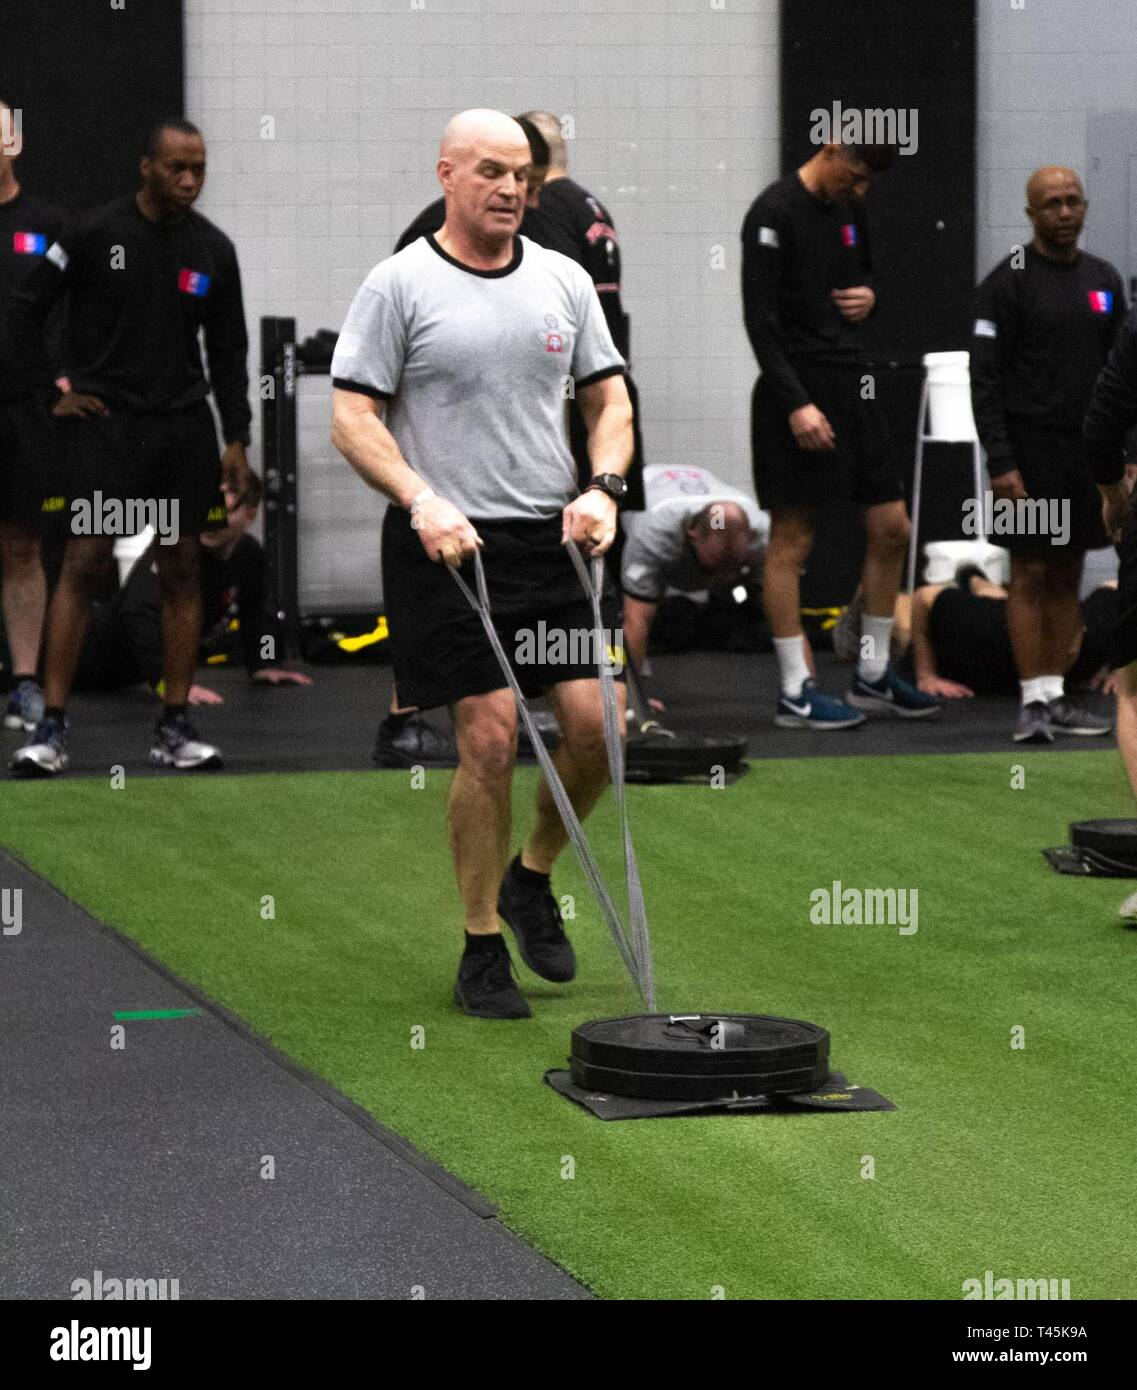 The 82nd Airborne Division Commanding General, Maj. Gen. James Mingus, completes the shuttle lane event during physical training, by pulling a weighted sled with some of the 82nd Airborne Division Sustainment Brigade Paratroopers at Tucker's gym, Fort Bragg, N.C., Mar. 1, 2019. - Stock Image